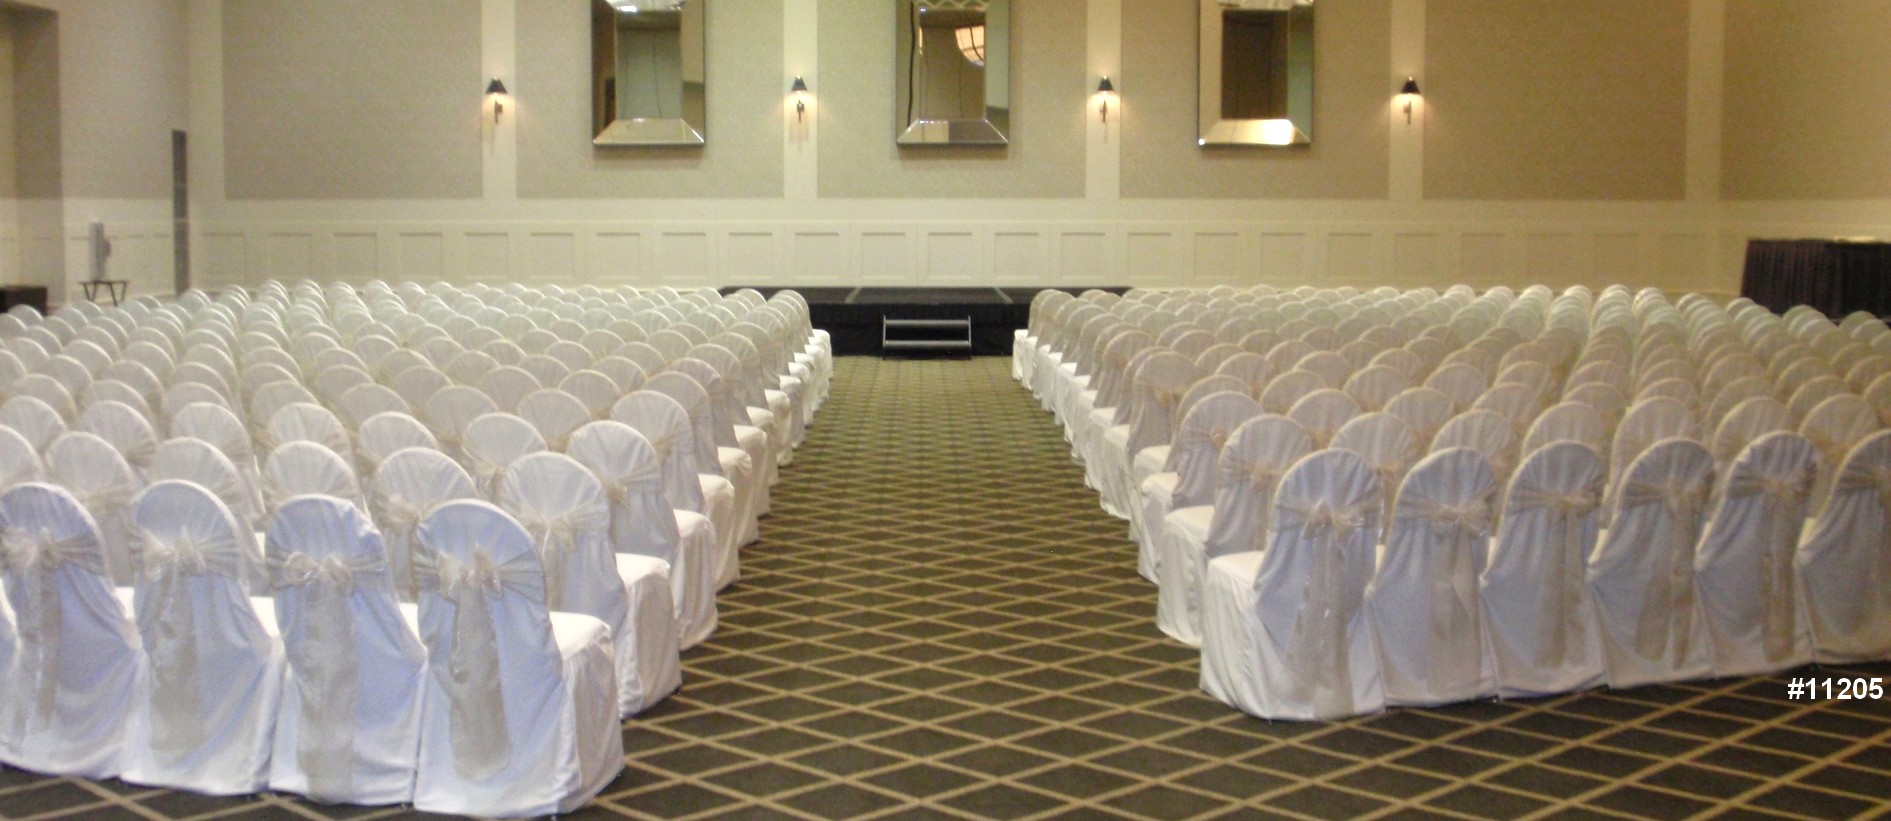 Colorado chair cover rentals wedding white theme color 11205 Chair cover rentals